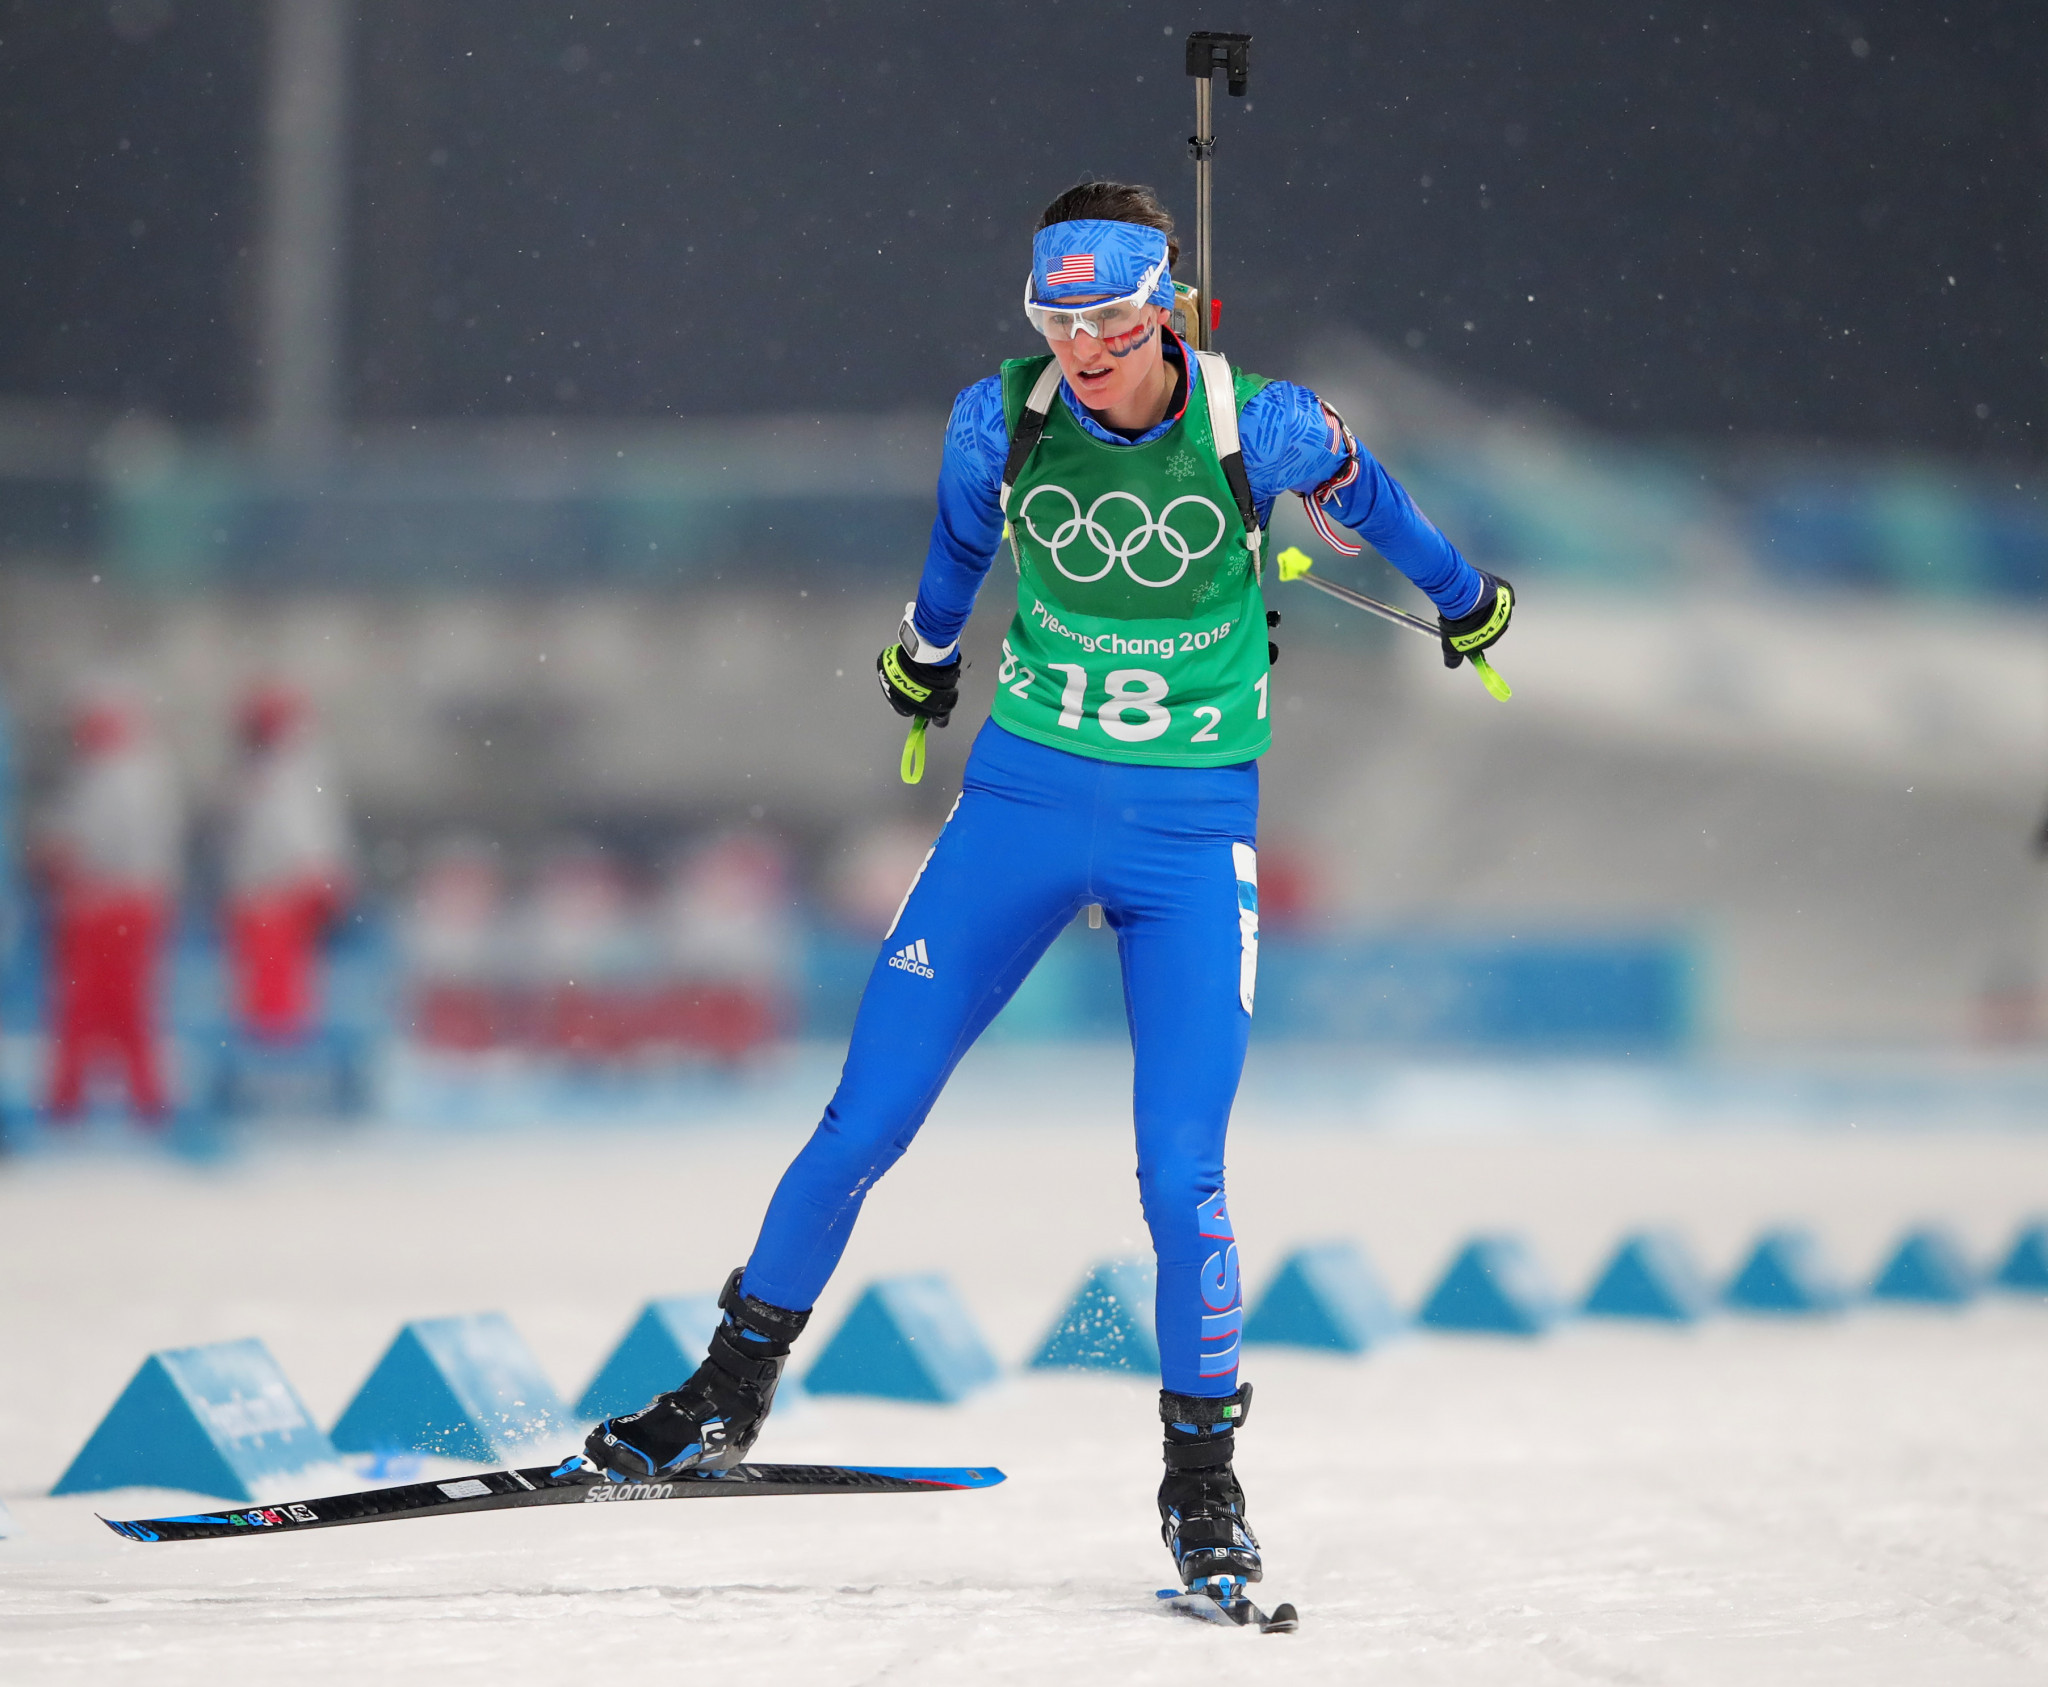 IBU Athlete Committee chair Clare Egan claimed the corruption scandal could be the change biathlon needs ©Getty Images